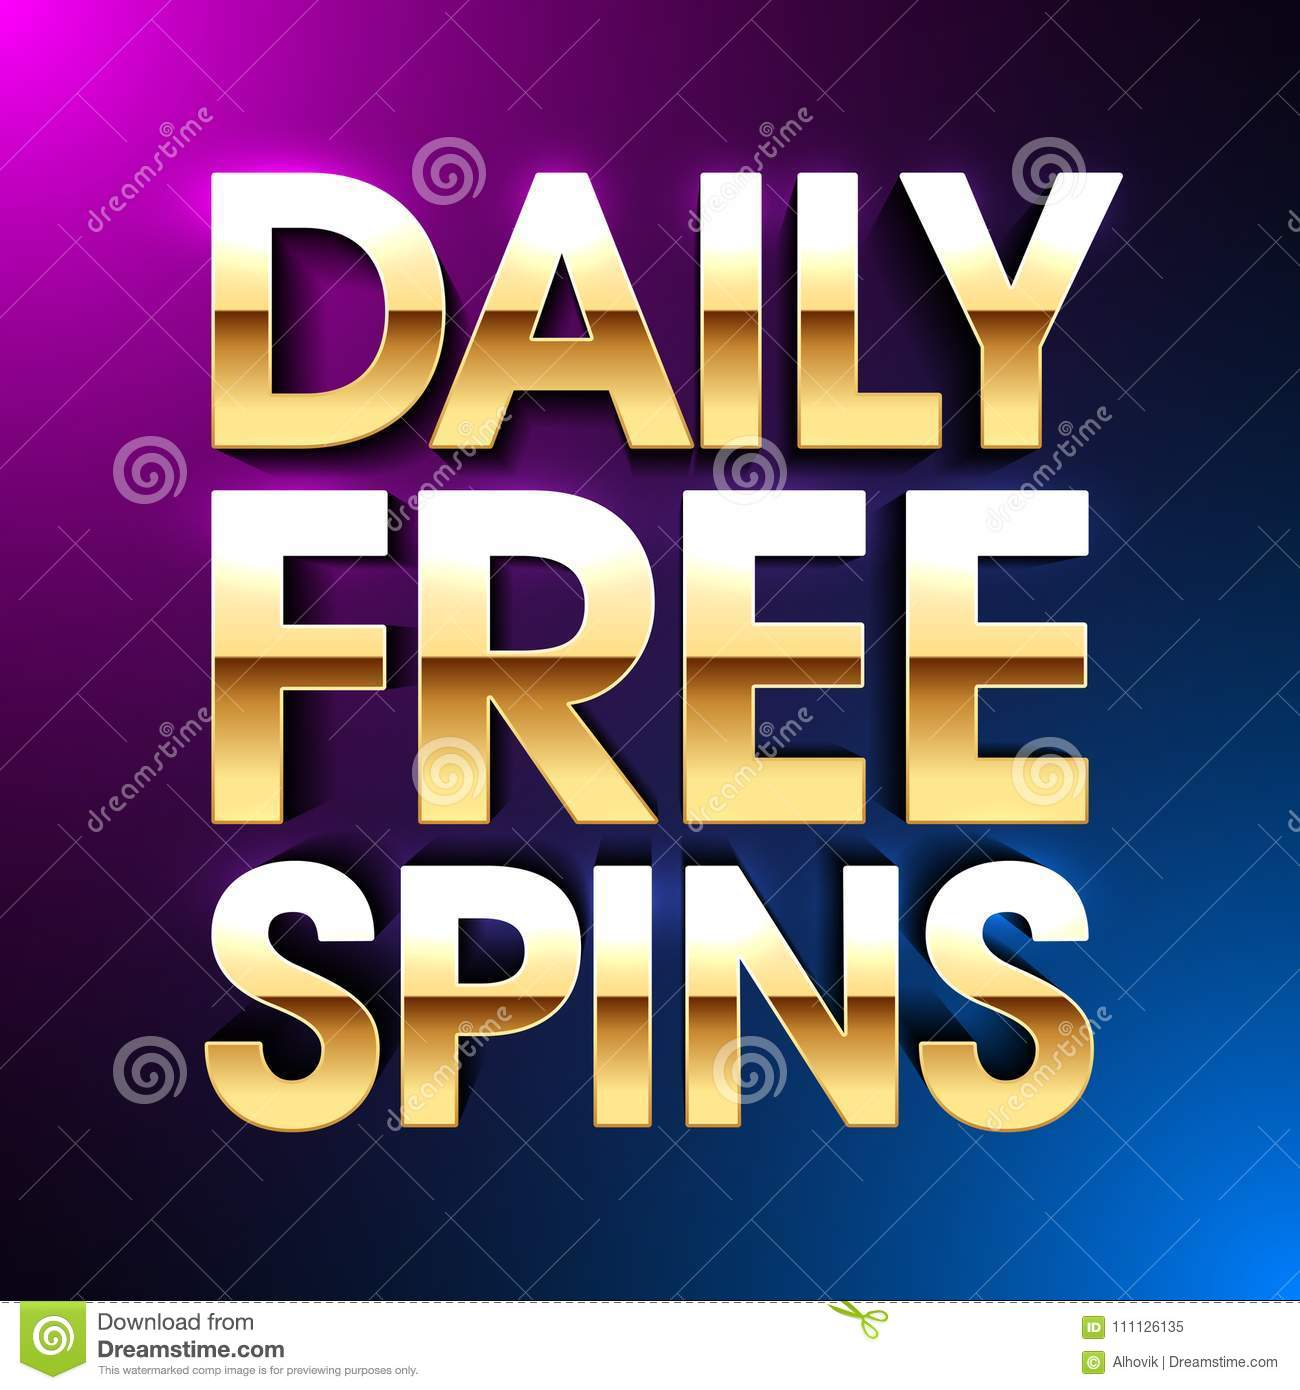 Daily free spins true blue casino